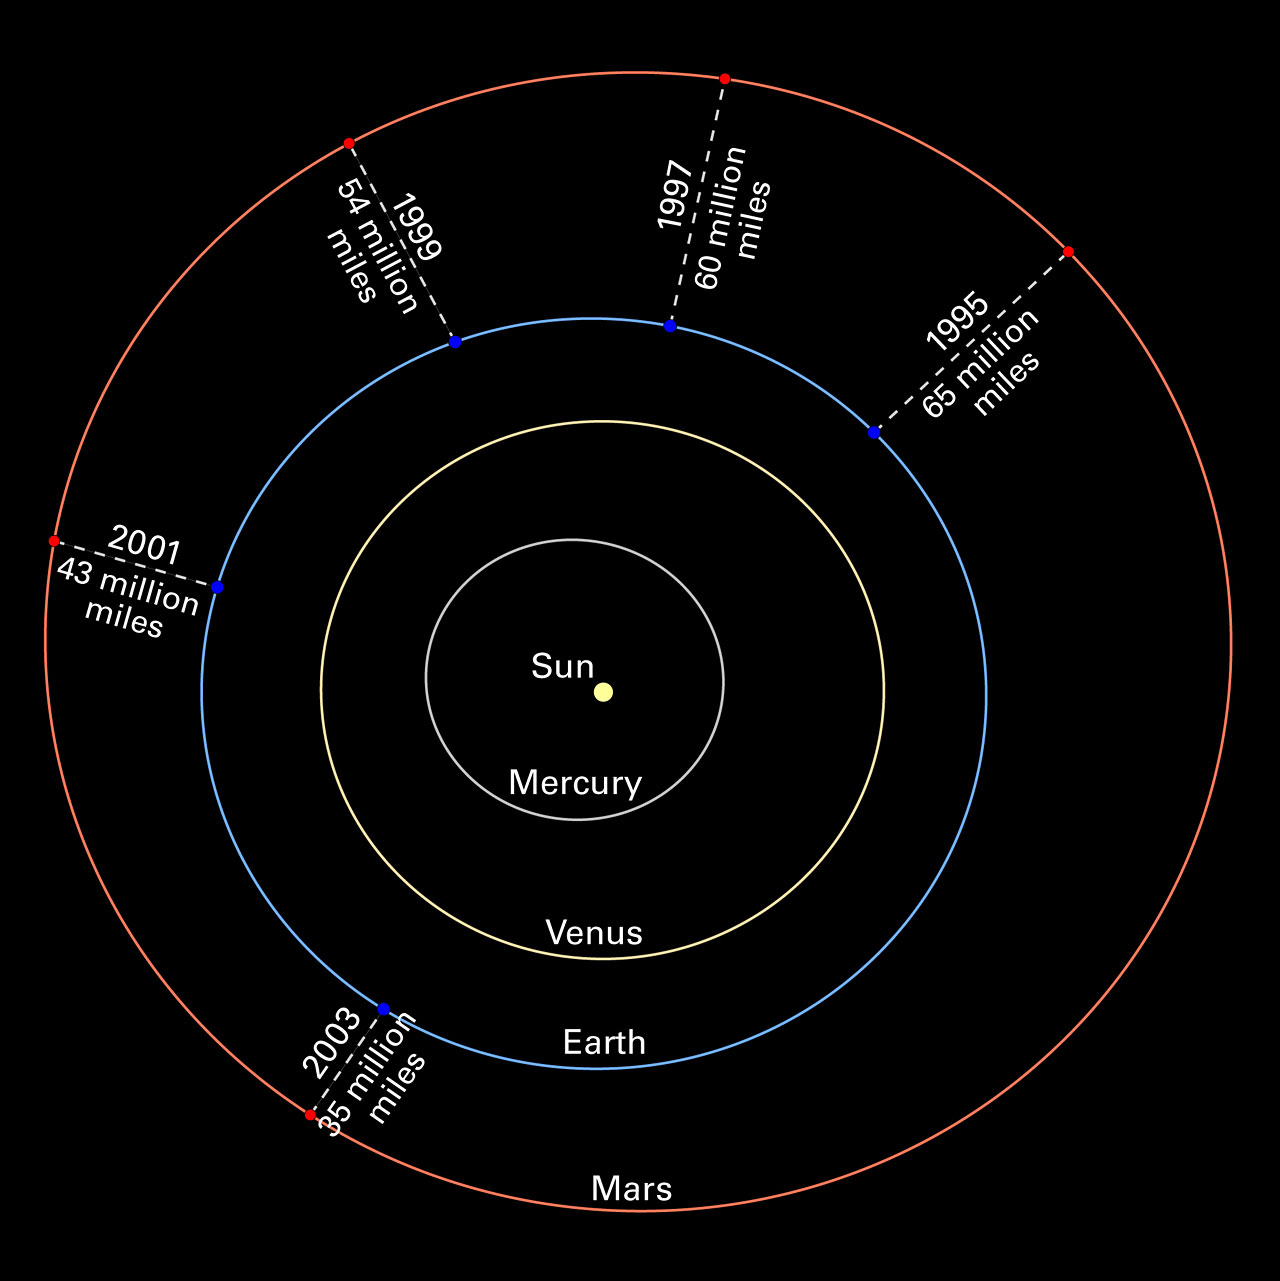 Mars oppositions Solar System diagram without images | ESA/Hubble